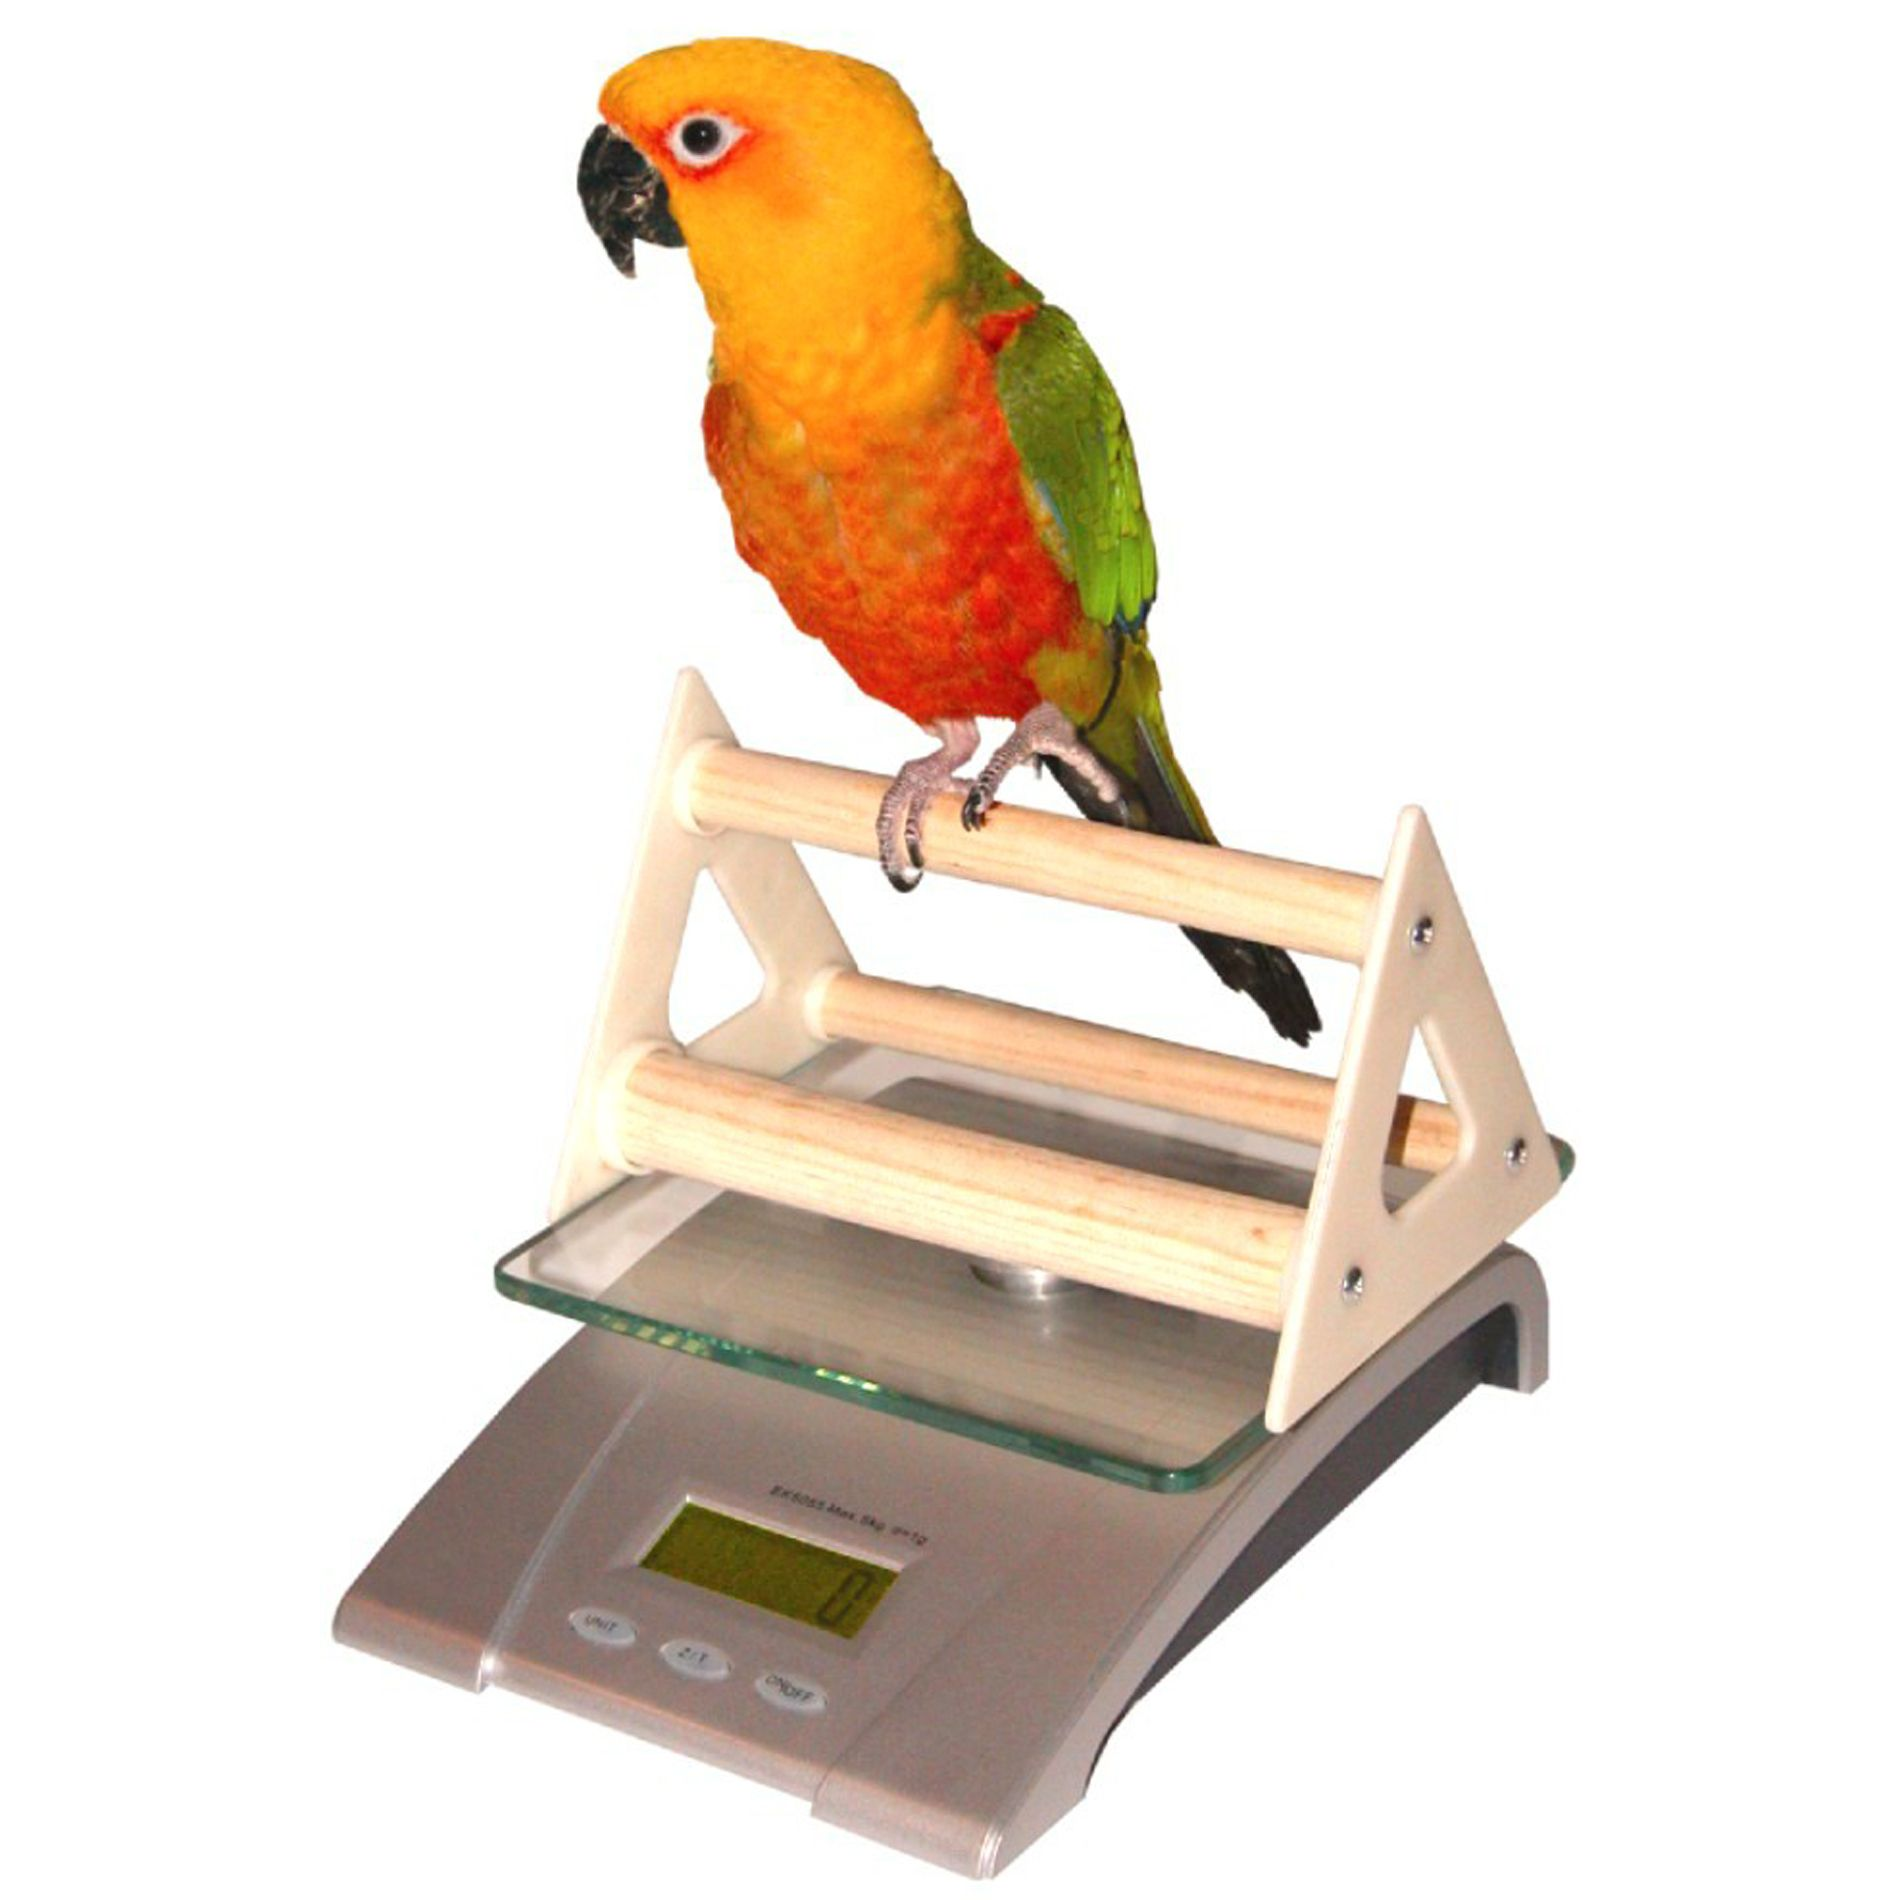 Redmon Digital Bird And Small Animal Scale With Perch